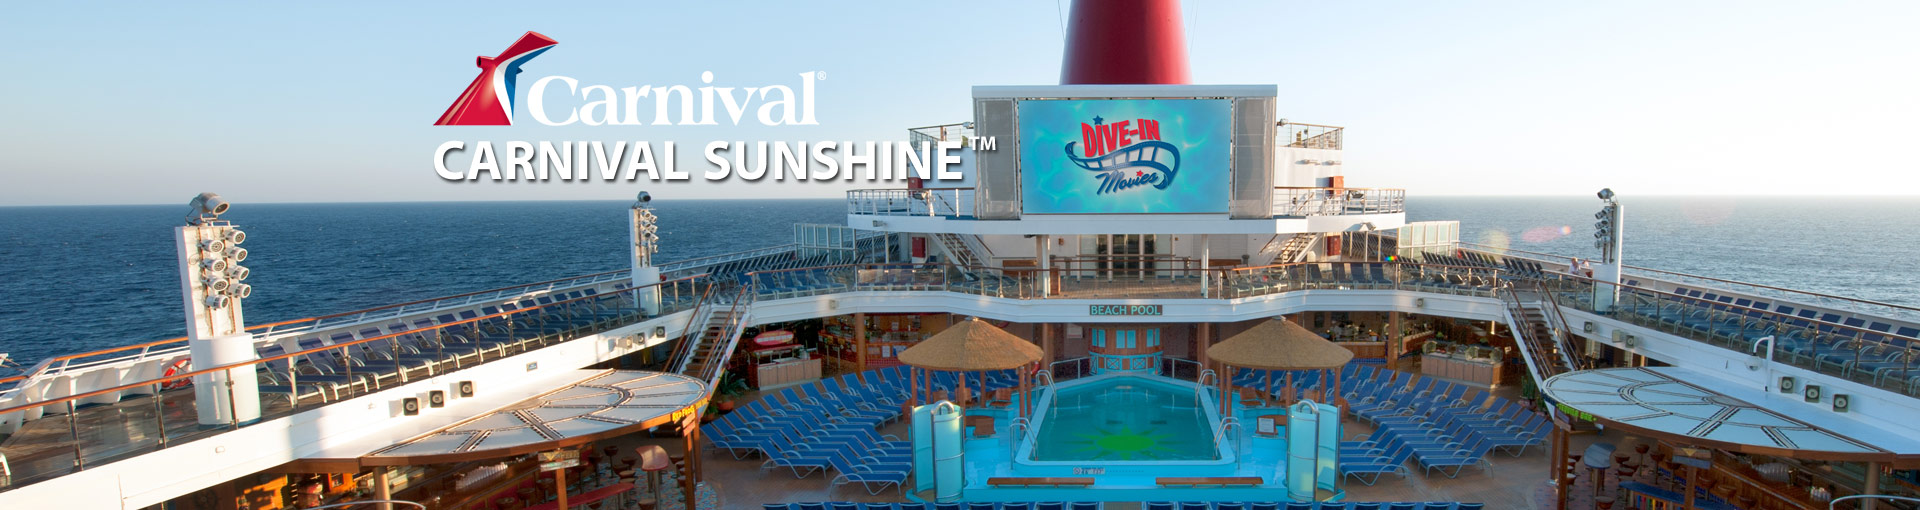 Carnival Sunshine Cruise Ship And Carnival Sunshine - Cape canaveral cruise ship schedule